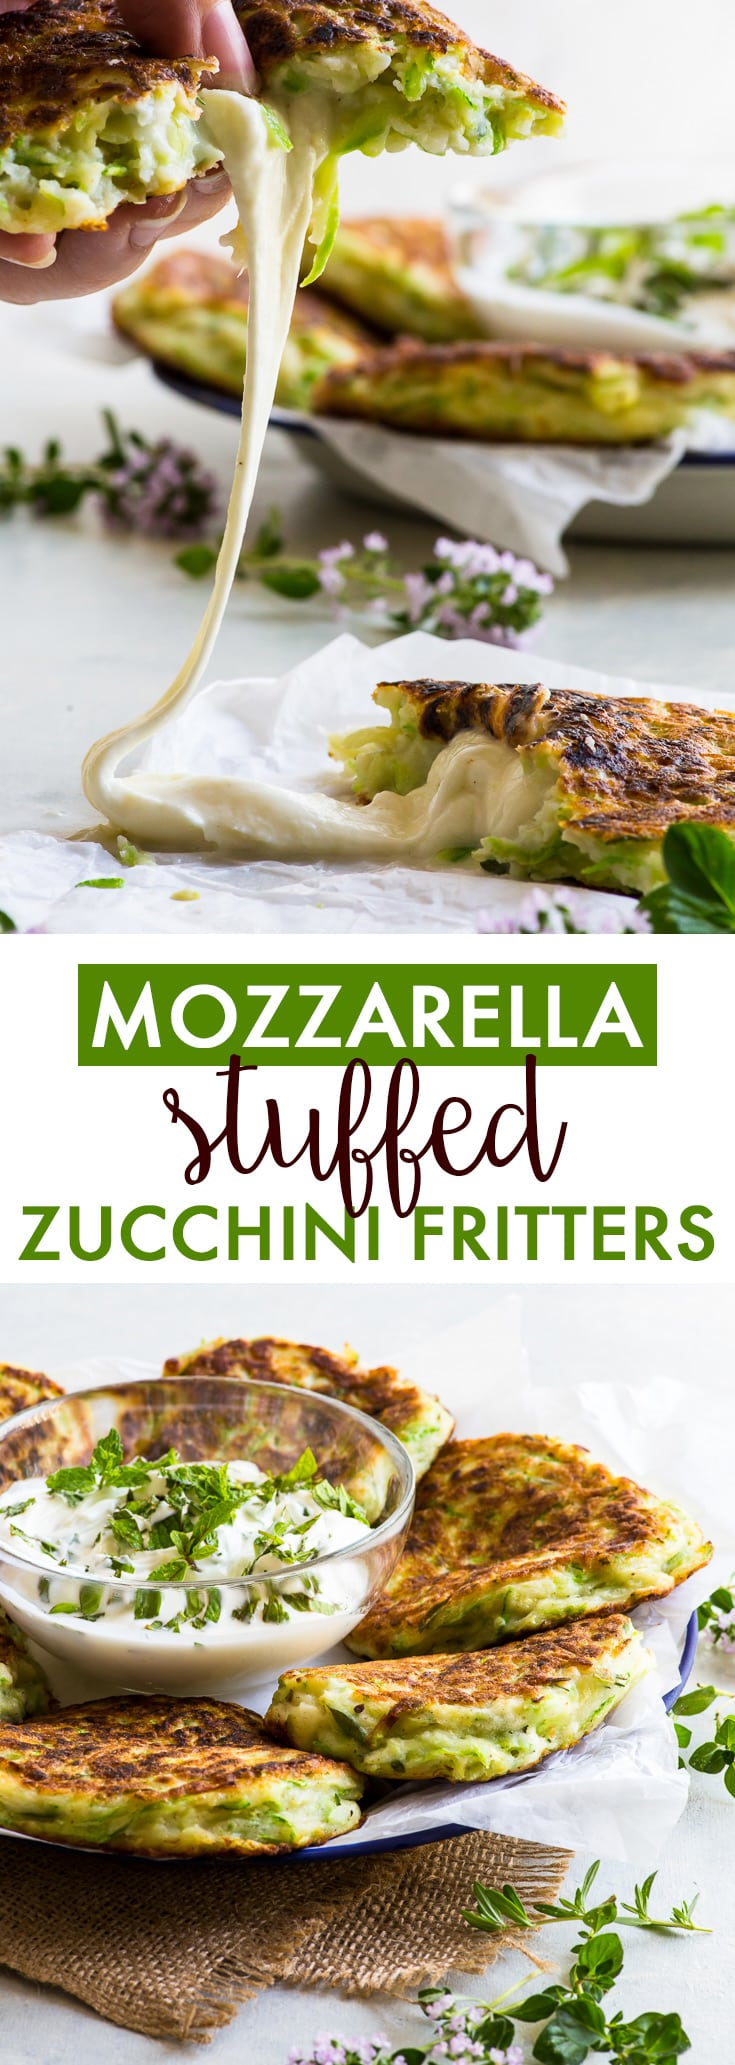 Mozzarella Stuffed Zucchini Fritters (Gluten Free) - The ultimate way to use up summer zucchini: mozzarella stuffed zucchini fritters. That's right: every zucchini fritter has a gooey melted mozzarella cheese centre, which takes this simple dish all the way to sheer perfection. Zucchini recipes. Courgette recipes. Summer lunch and dinner recipes. Cheese recipes. Cheese stuffed fritters. Gluten free recipes. #zucchini #summer #recipe #cheese #mozzarella #glutenfree #food